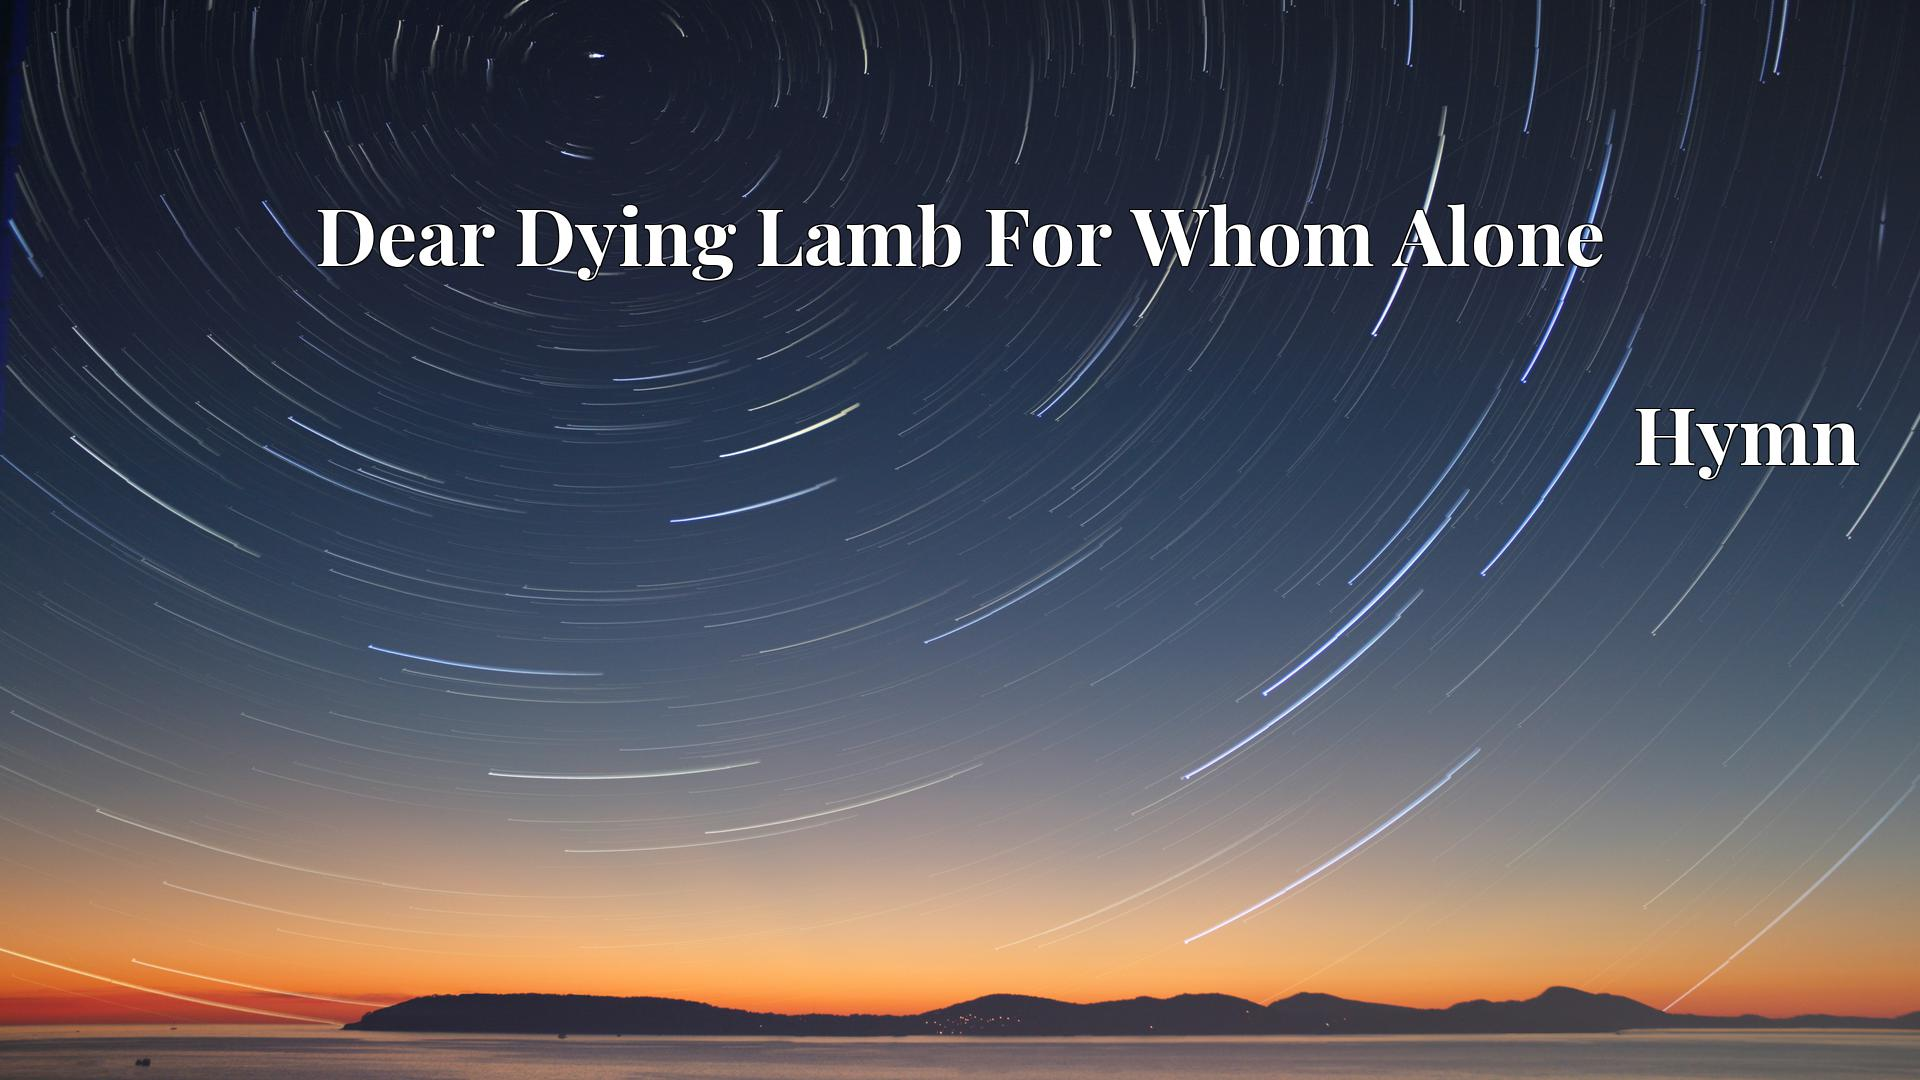 Dear Dying Lamb For Whom Alone - Hymn